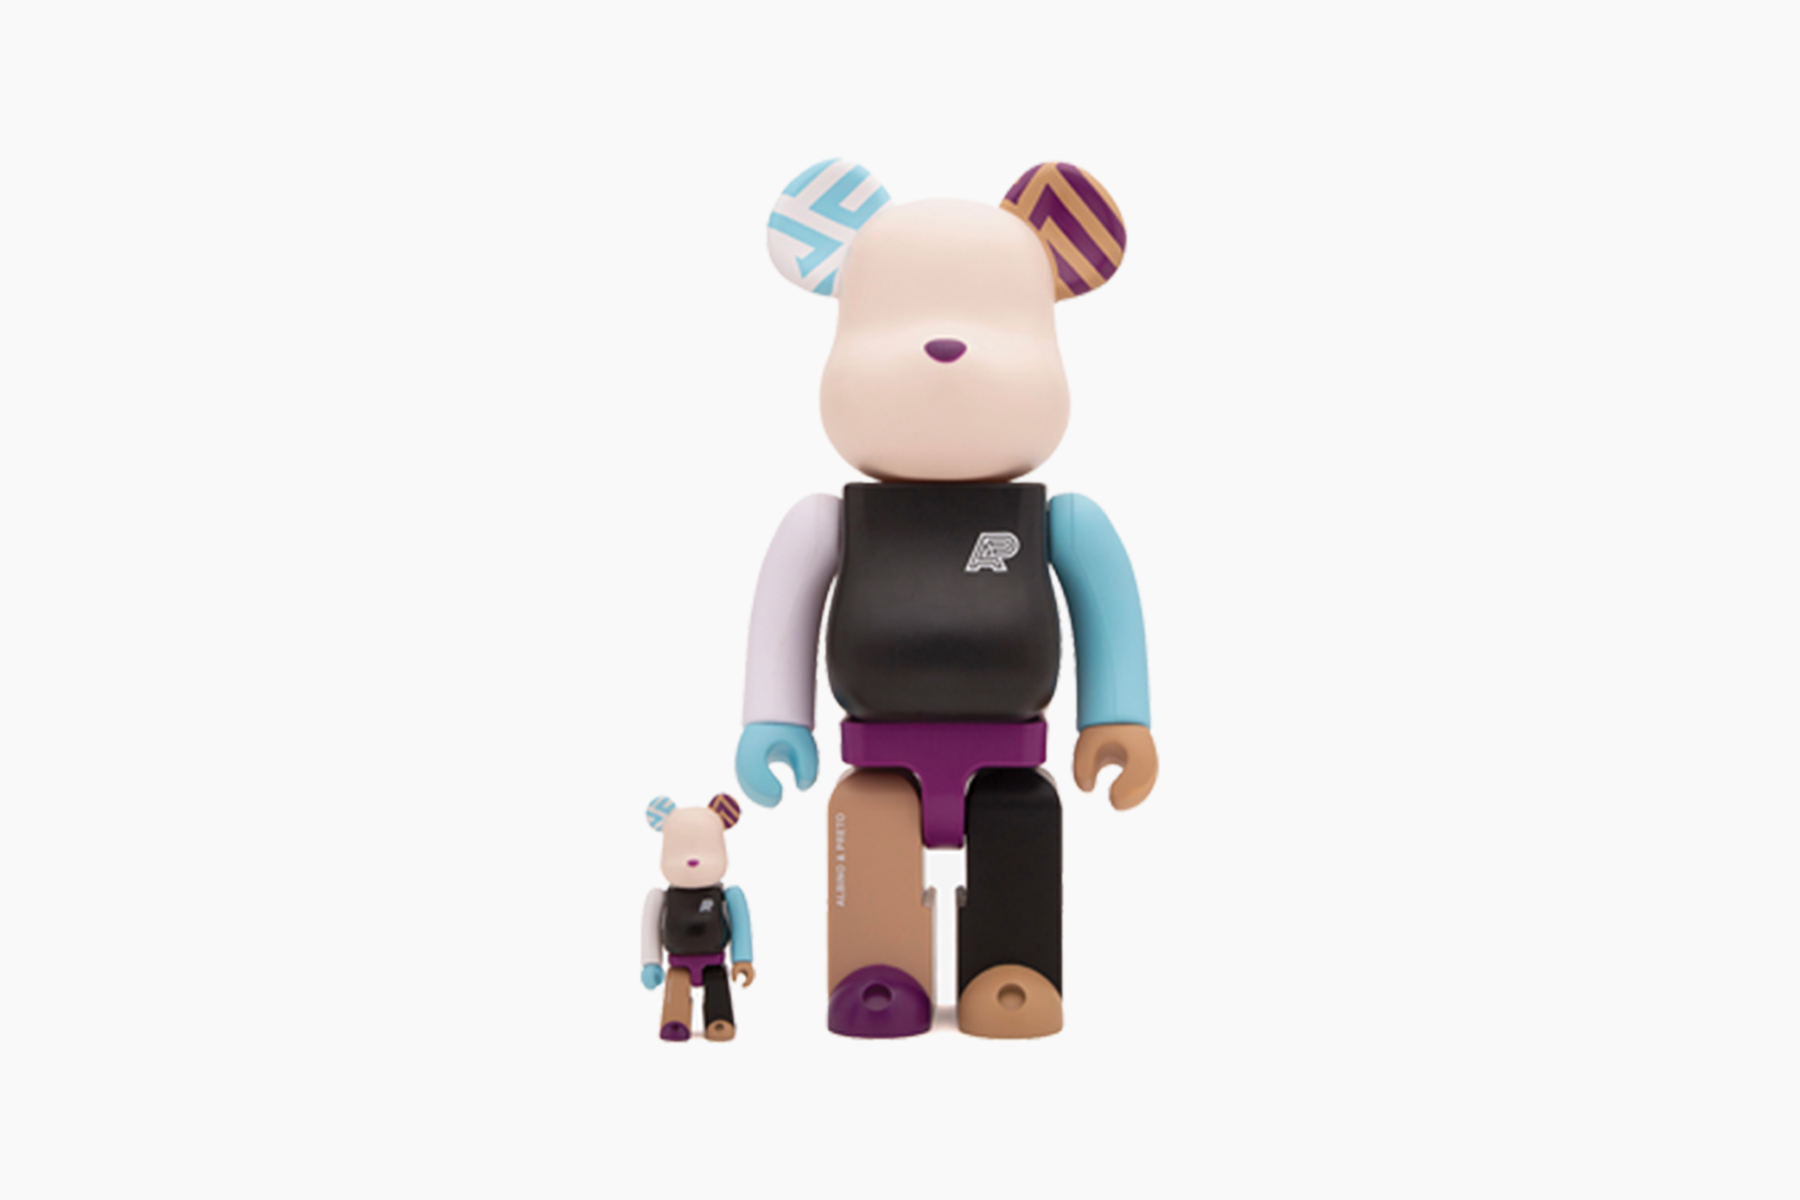 Albino & Preto x Medicom Toy BE@RBRICK Collection